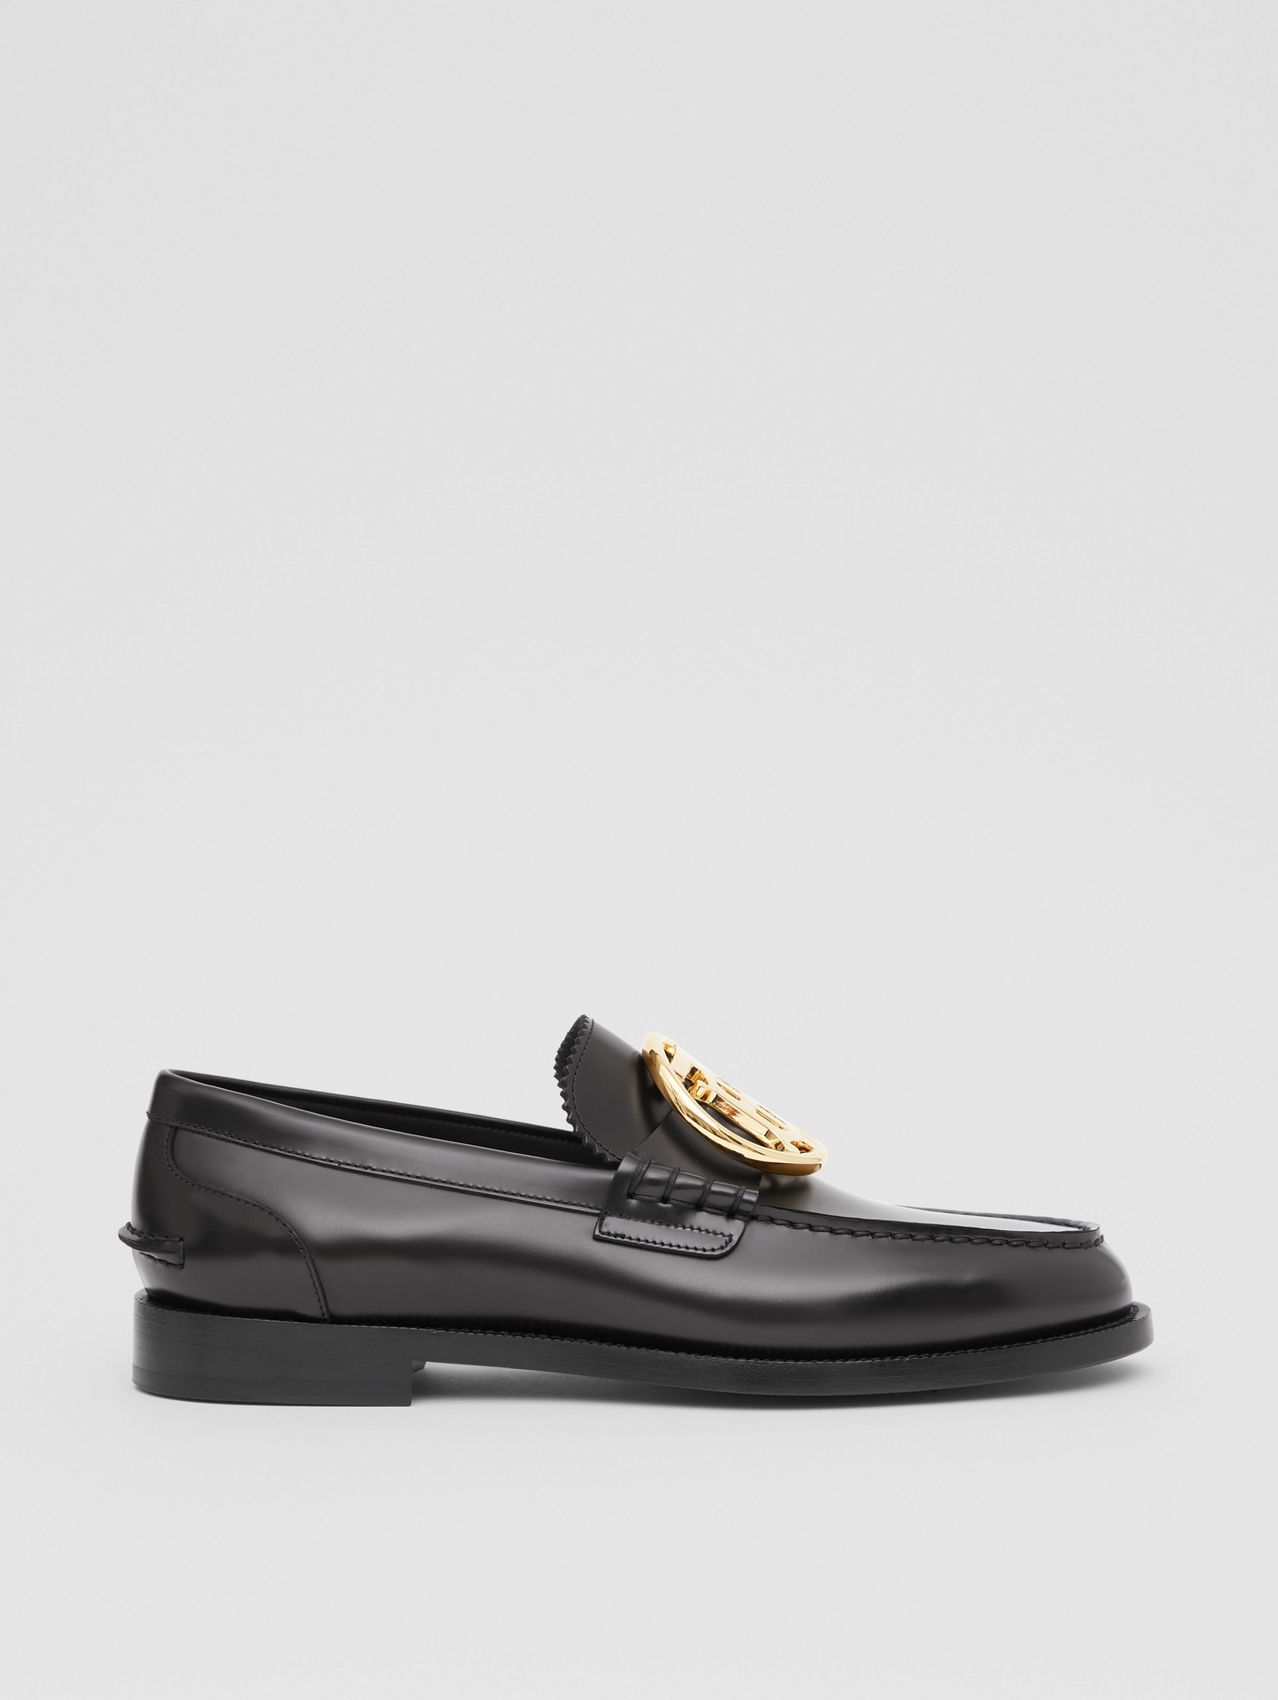 Monogram Motif Leather Loafers (Black)